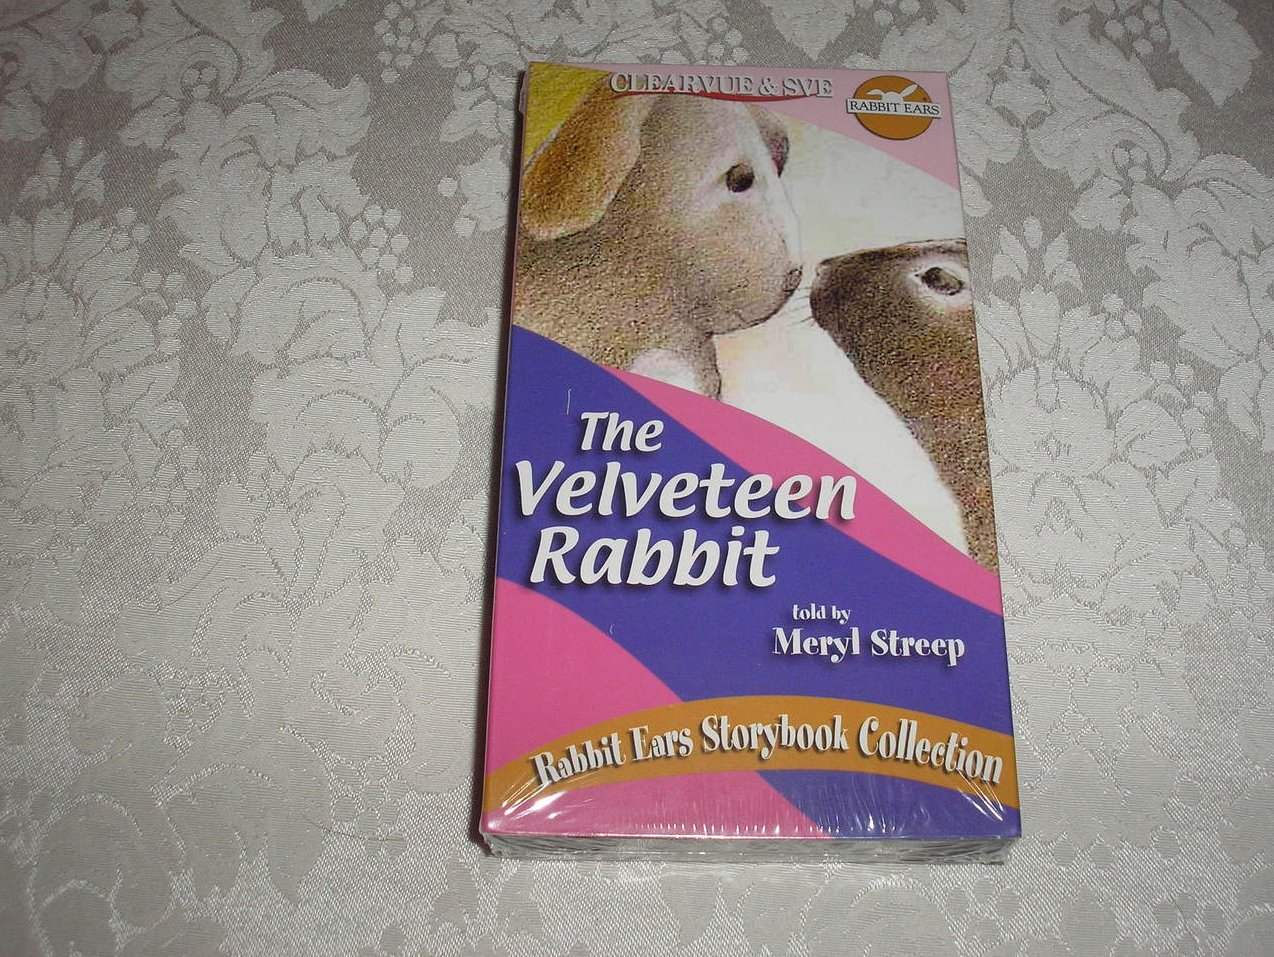 The Velveteen Rabbit VHS Video Rabbit Ears Storybook Collection New and Sealed